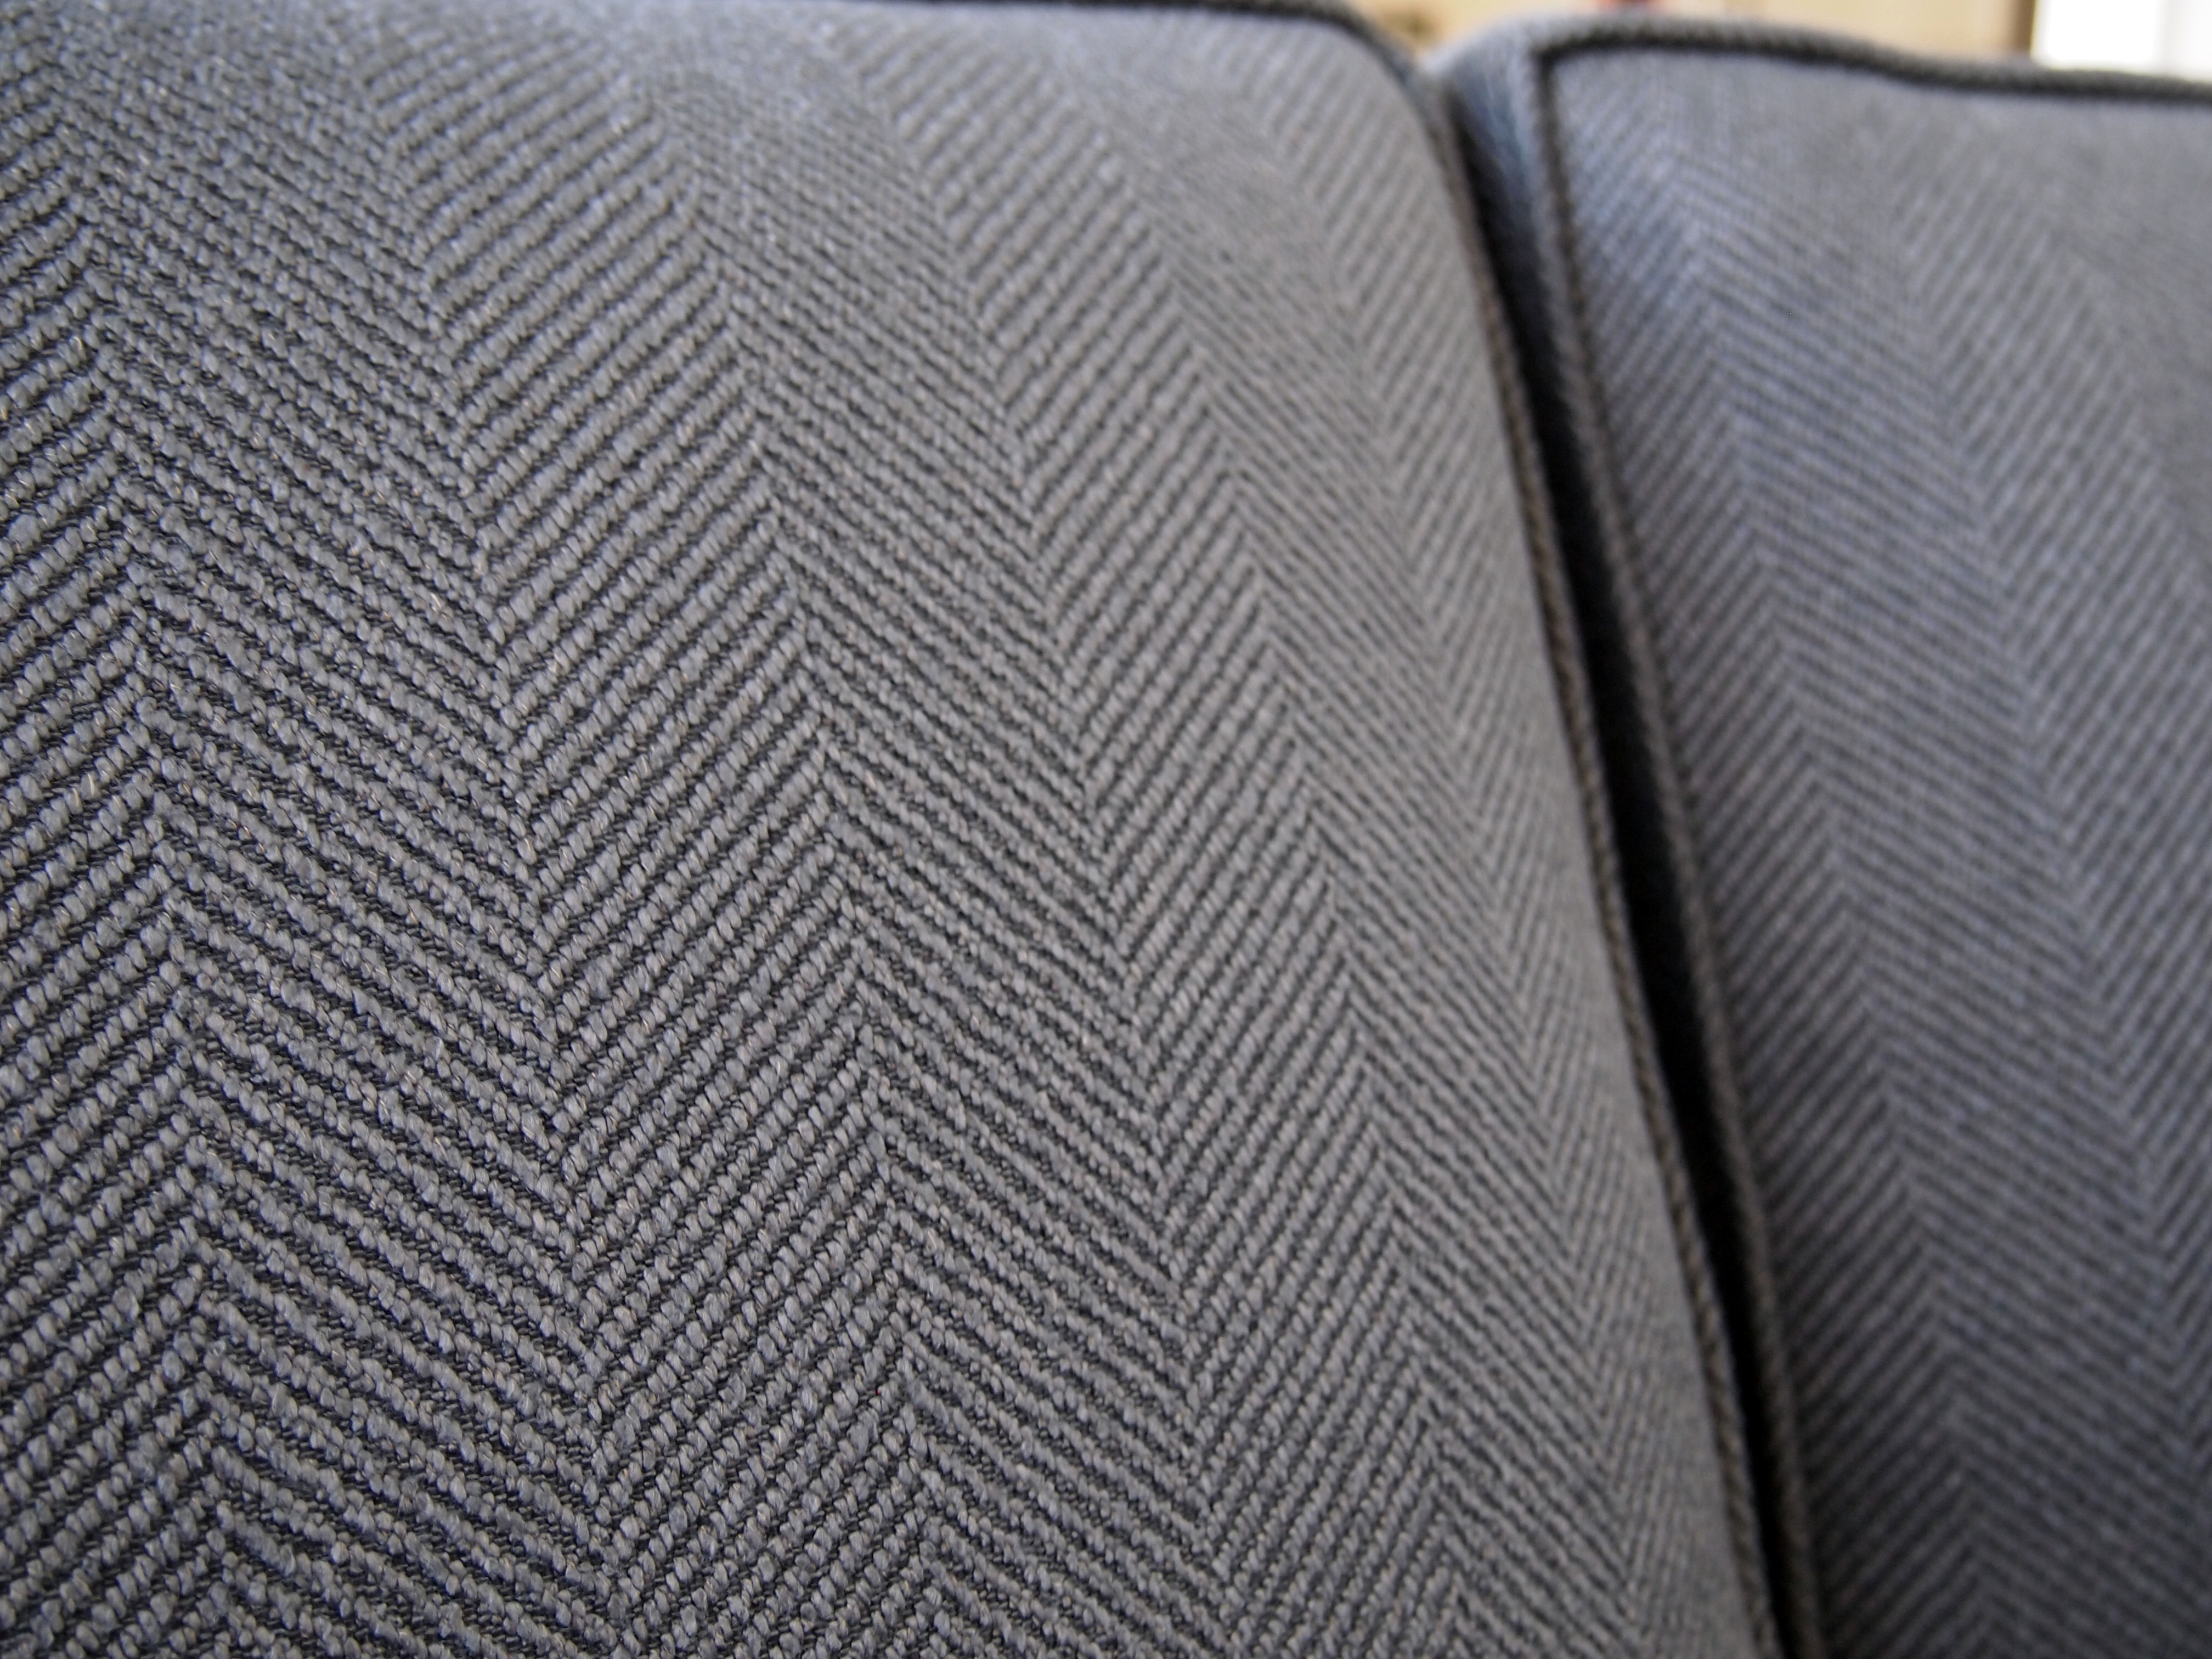 Hom Furniture Fabric Protection Sofa Fabric Samples Free Fabric Swatches Dunelm Thesofa